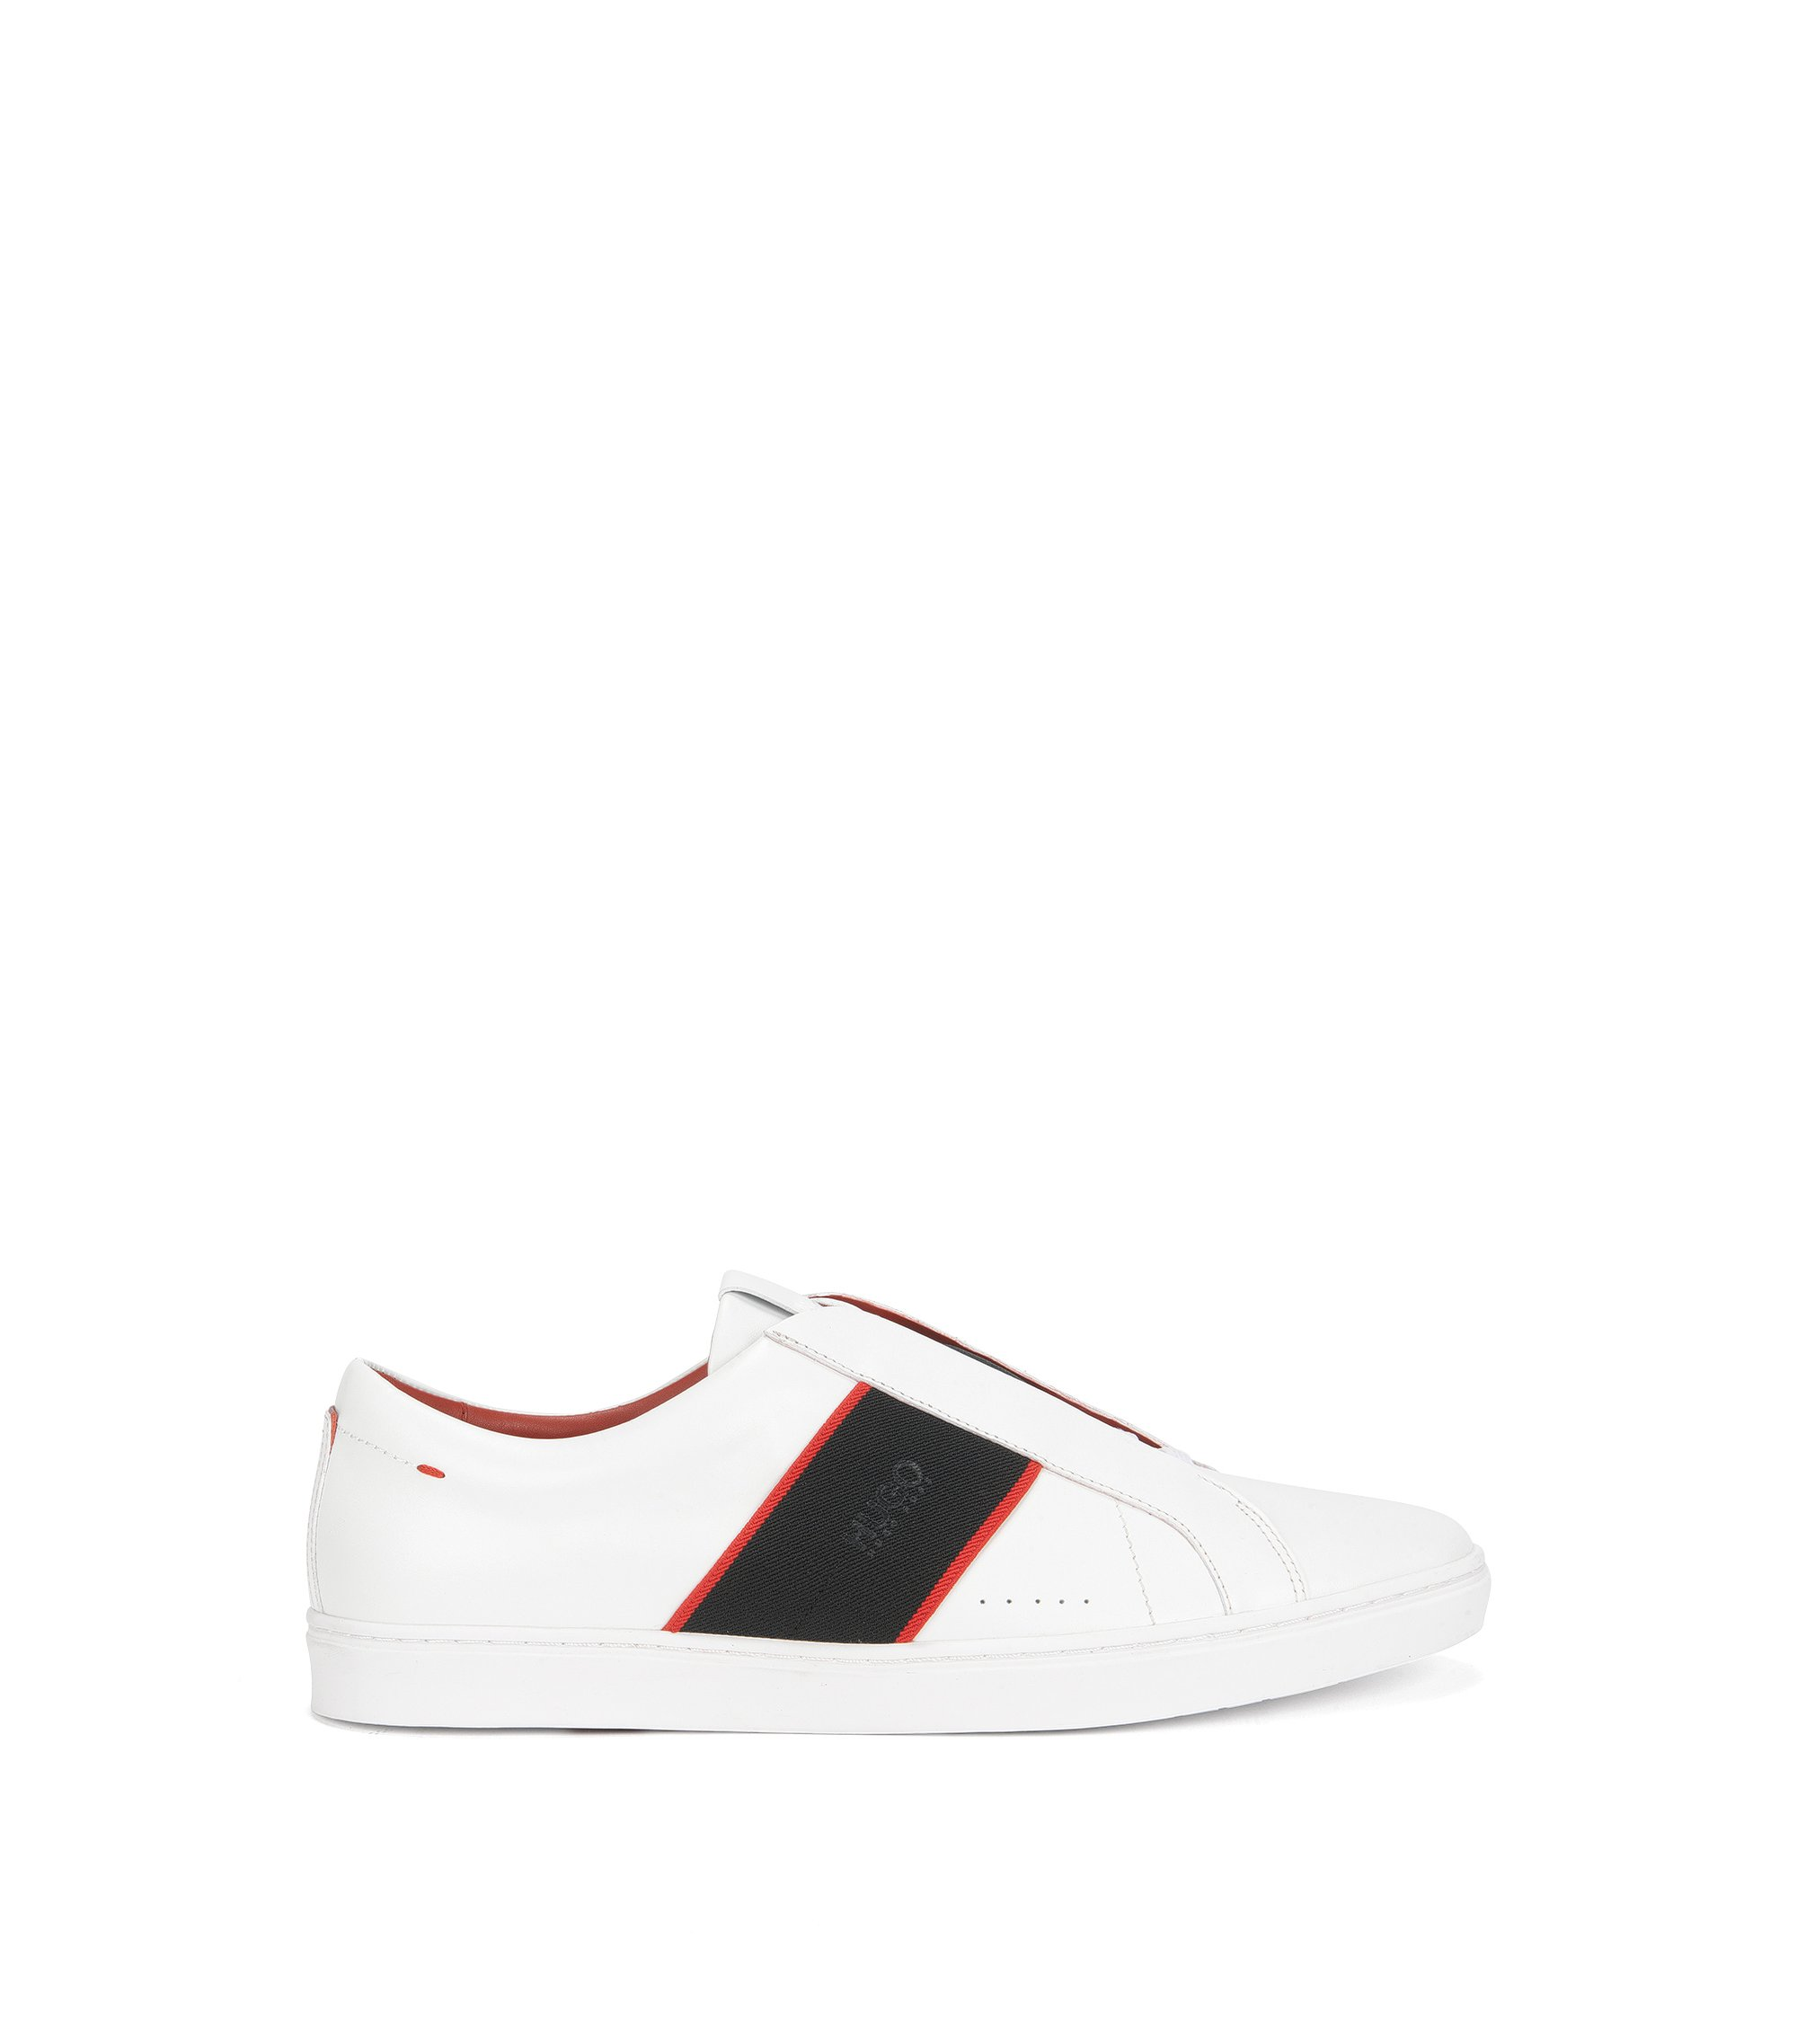 Sneakers slip-on in pelle nappa, Bianco